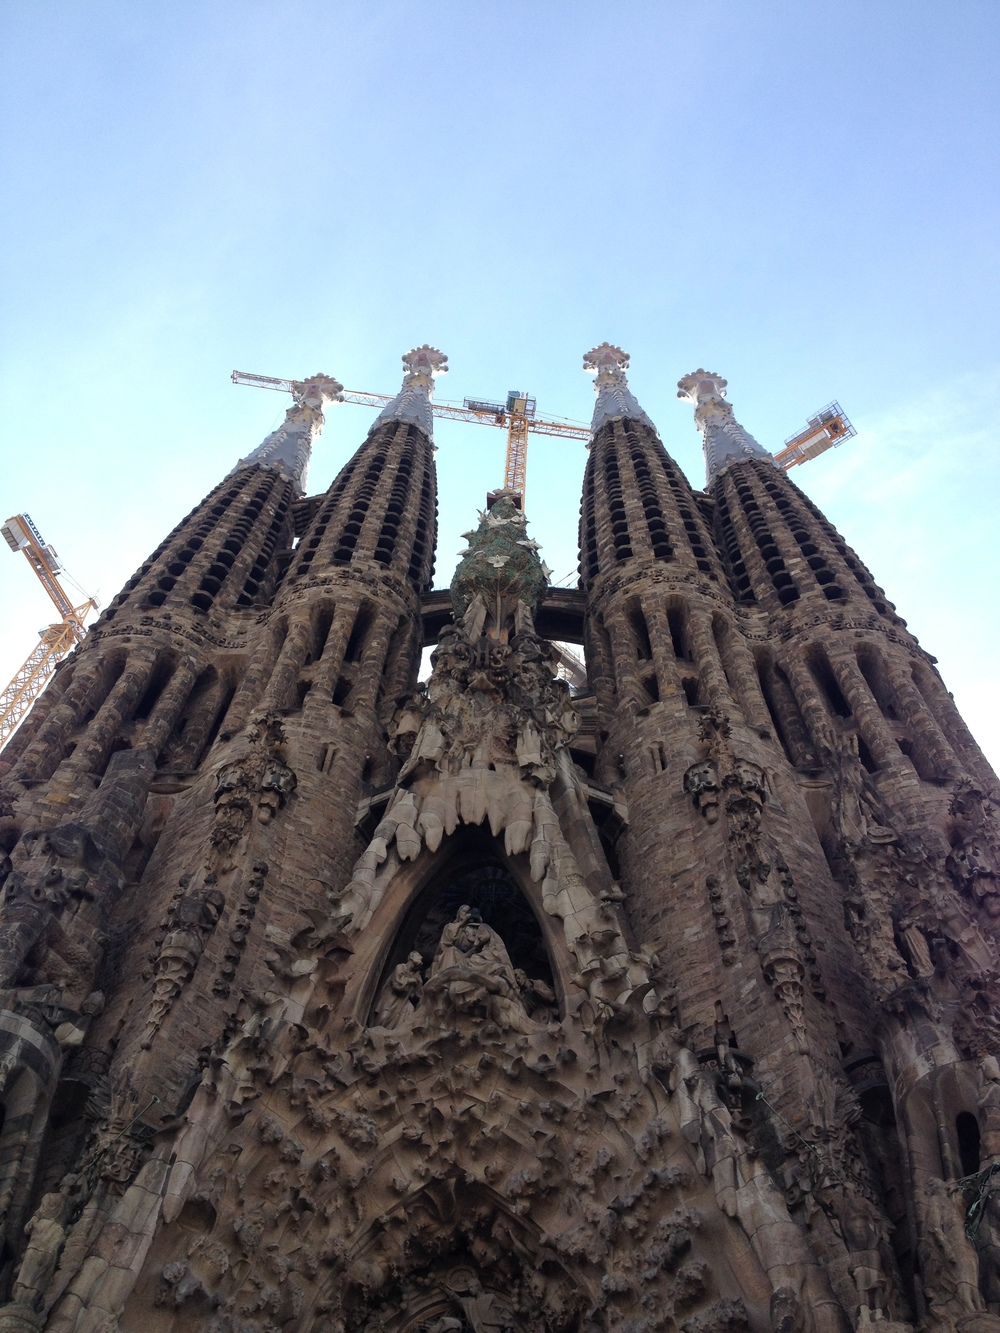 The Sagrada Familia haunts Barcelona from above, it's dripping presence being built slowly for years.